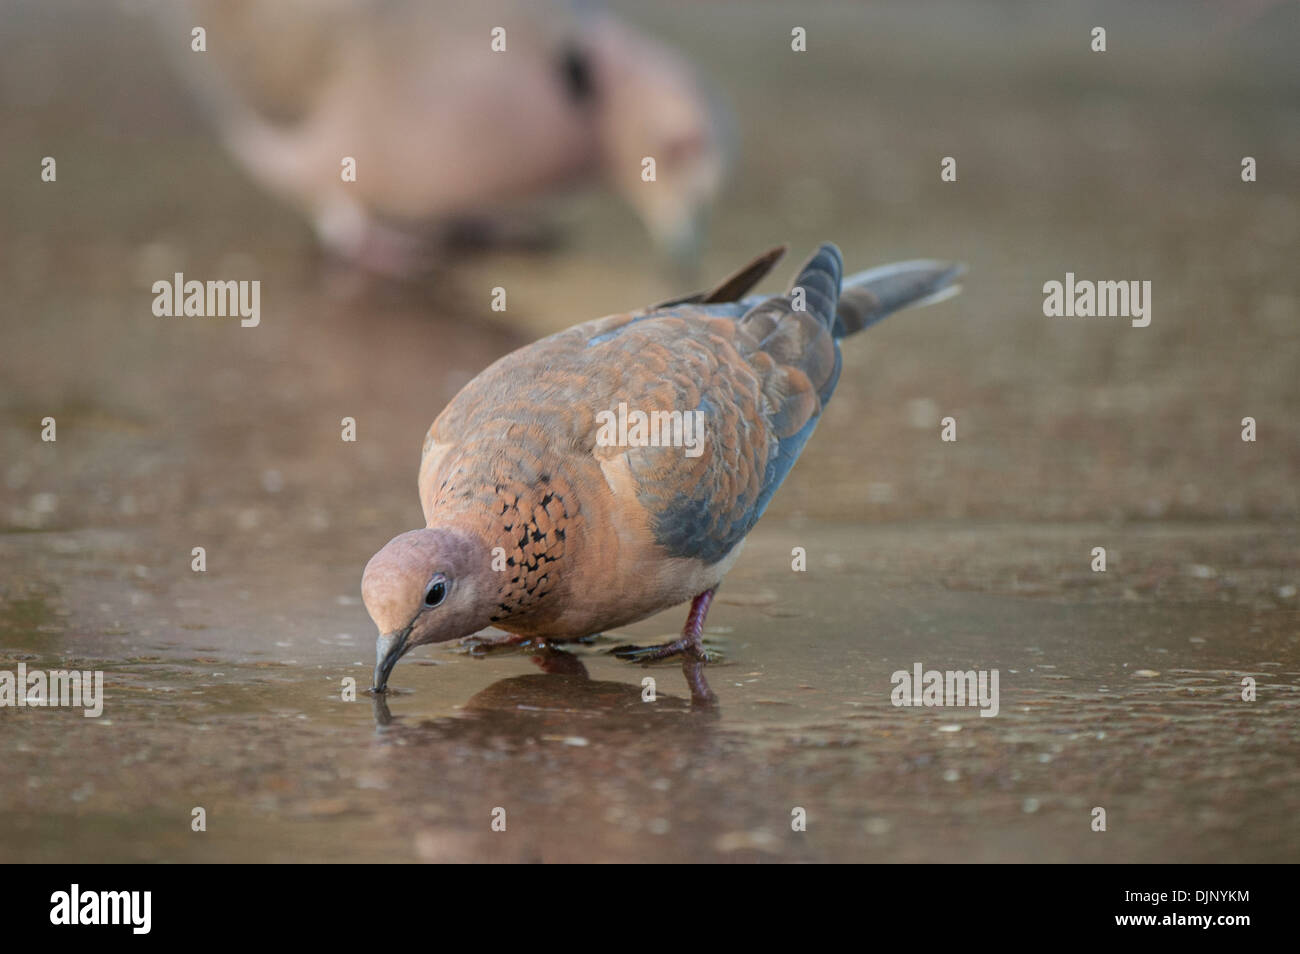 Adult dove drinking on path in landscape view. Stock Photo